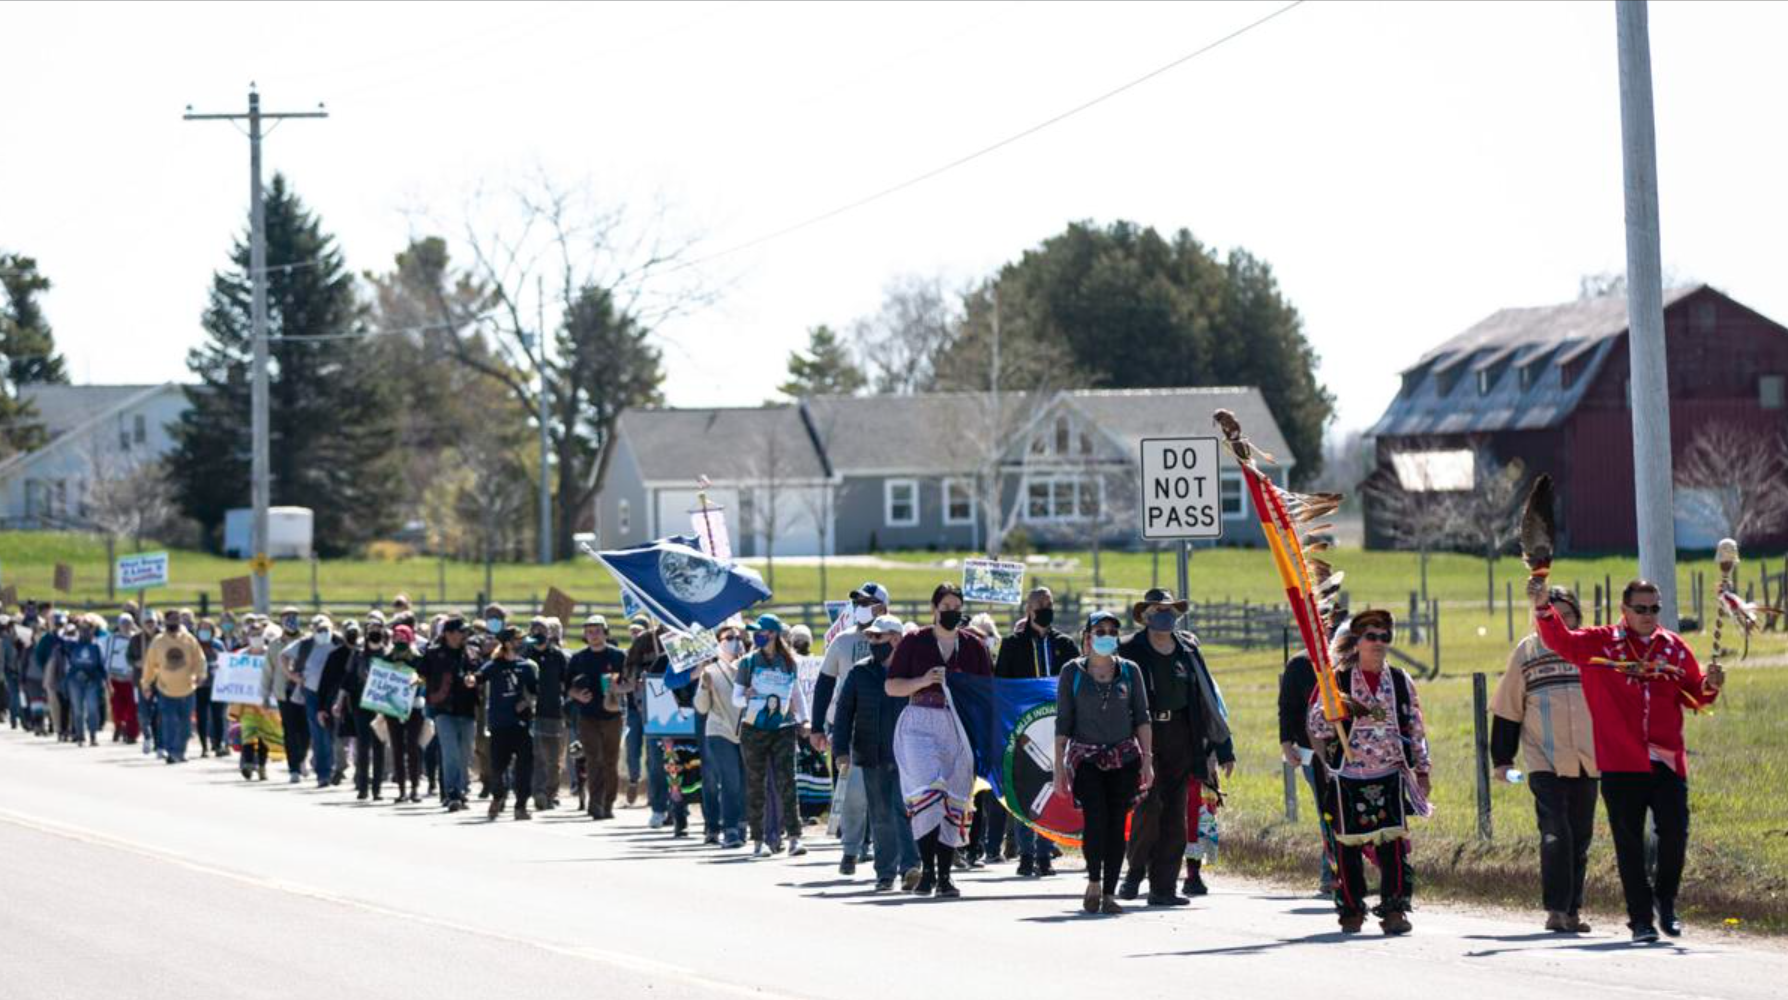 Protesters, led by indigenous elders, walk to Enbridge's Mackinaw Station in Mackinaw City. Protesters issued a symbolic eviction notice to Enbridge during the demonstration. Governor Gretchen Whitmer revoked an easement for the pipes to occupy the lake bottom in November and ordered the company to shutdown the pipeline by May 12. Enbridge has continued operating the pipeline saying that they will only stop operation if ordered by a court or regulator. (Photo: Mike Krebs / Record Eagle)